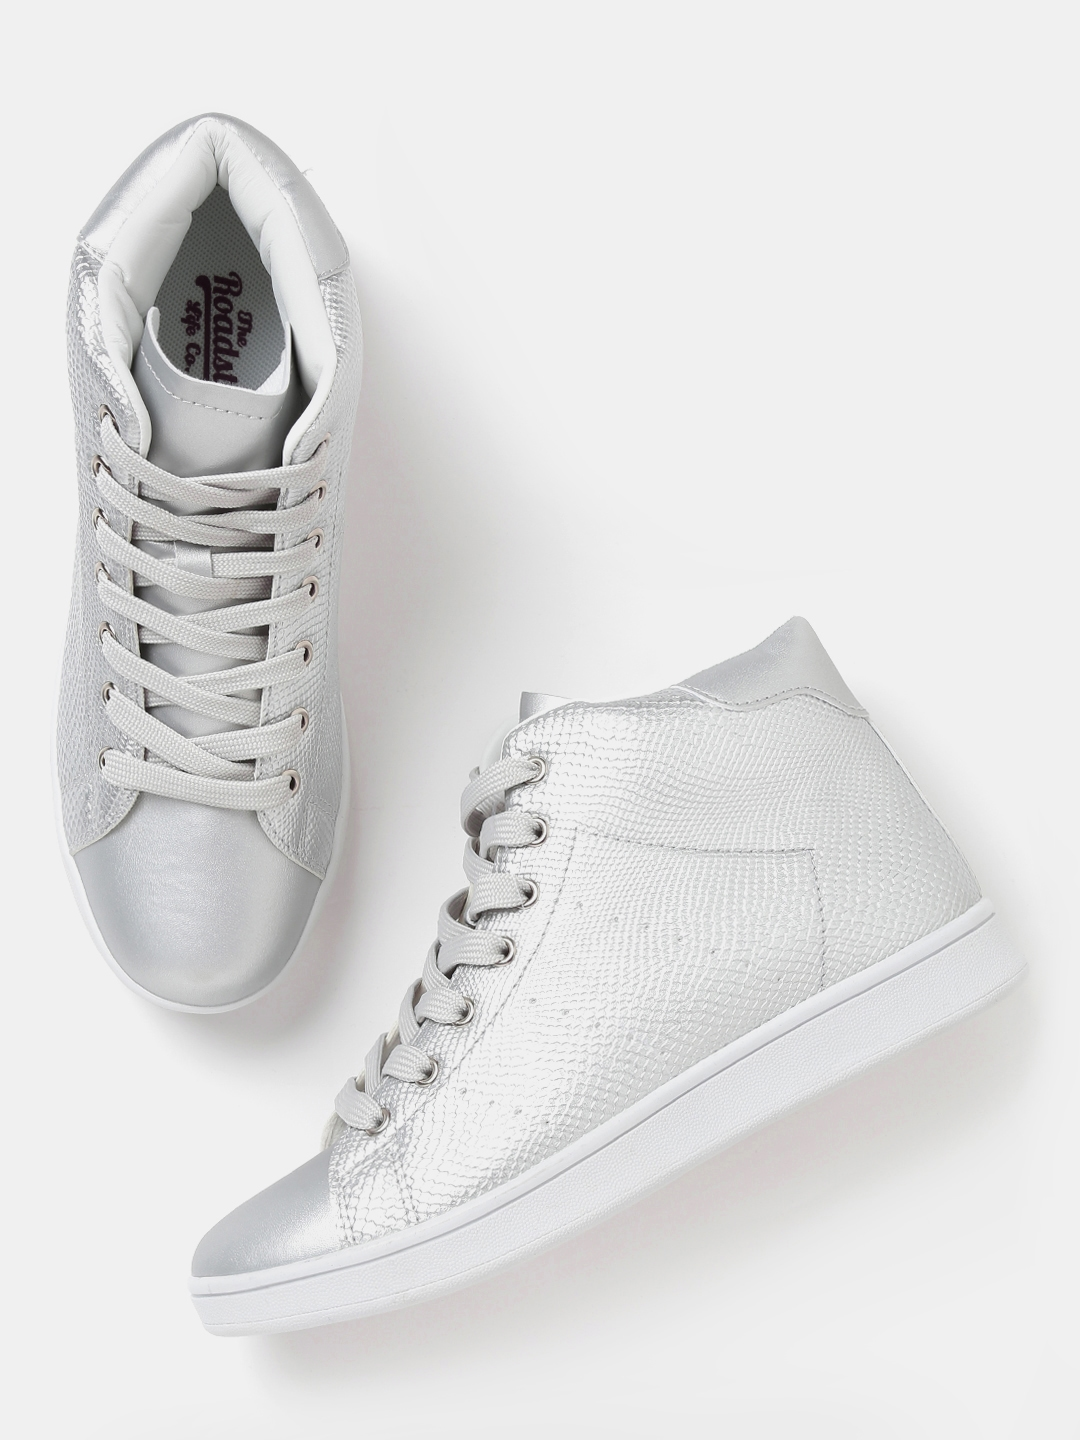 6fe942ce854 Buy Roadster Women Silver Toned Textured Mid Top Sneakers - Casual ...